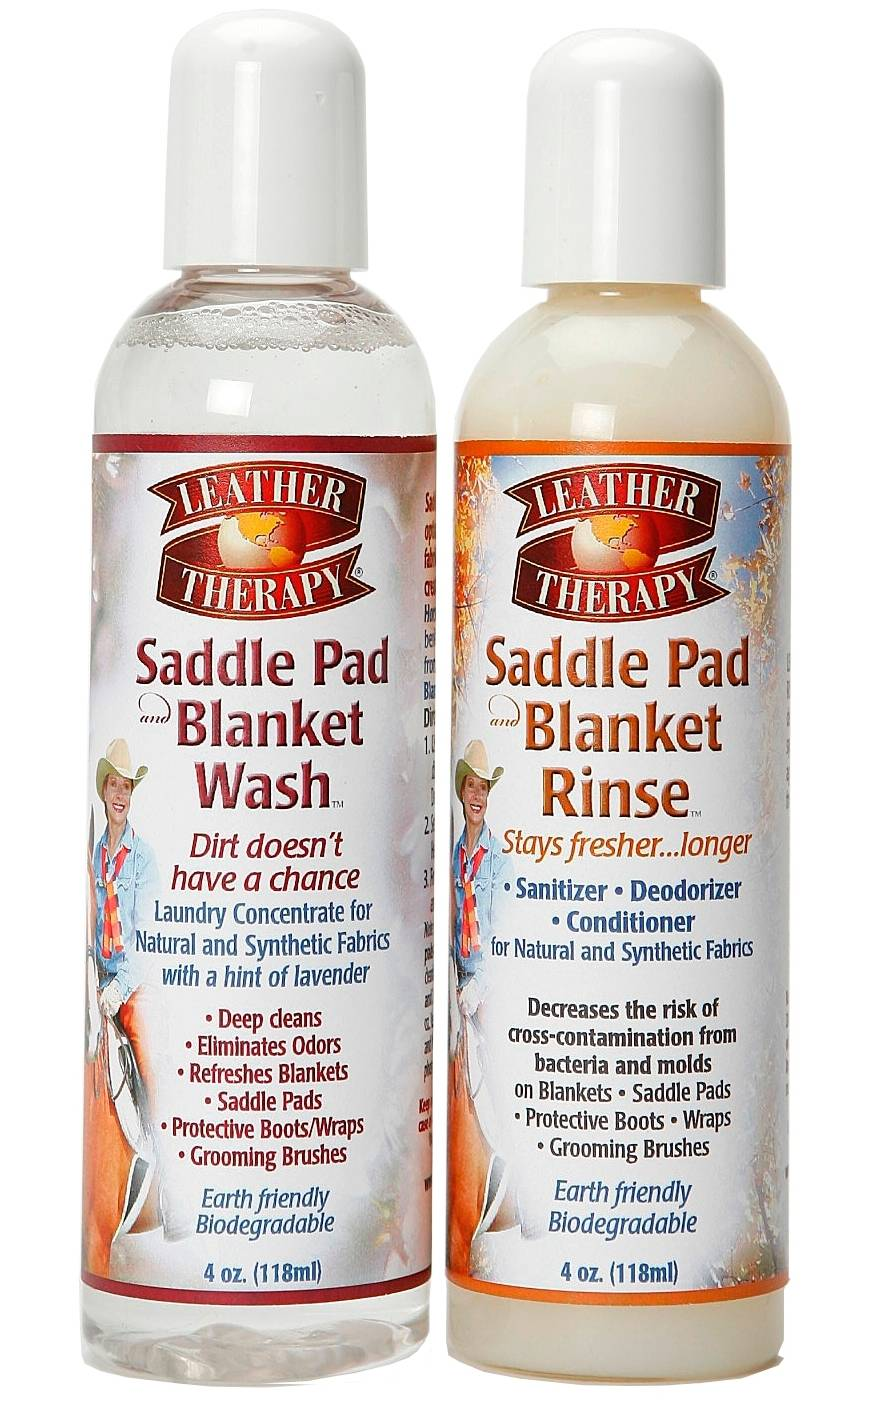 Leather Therapy Saddle Pad & Blanket Wash Gift Set